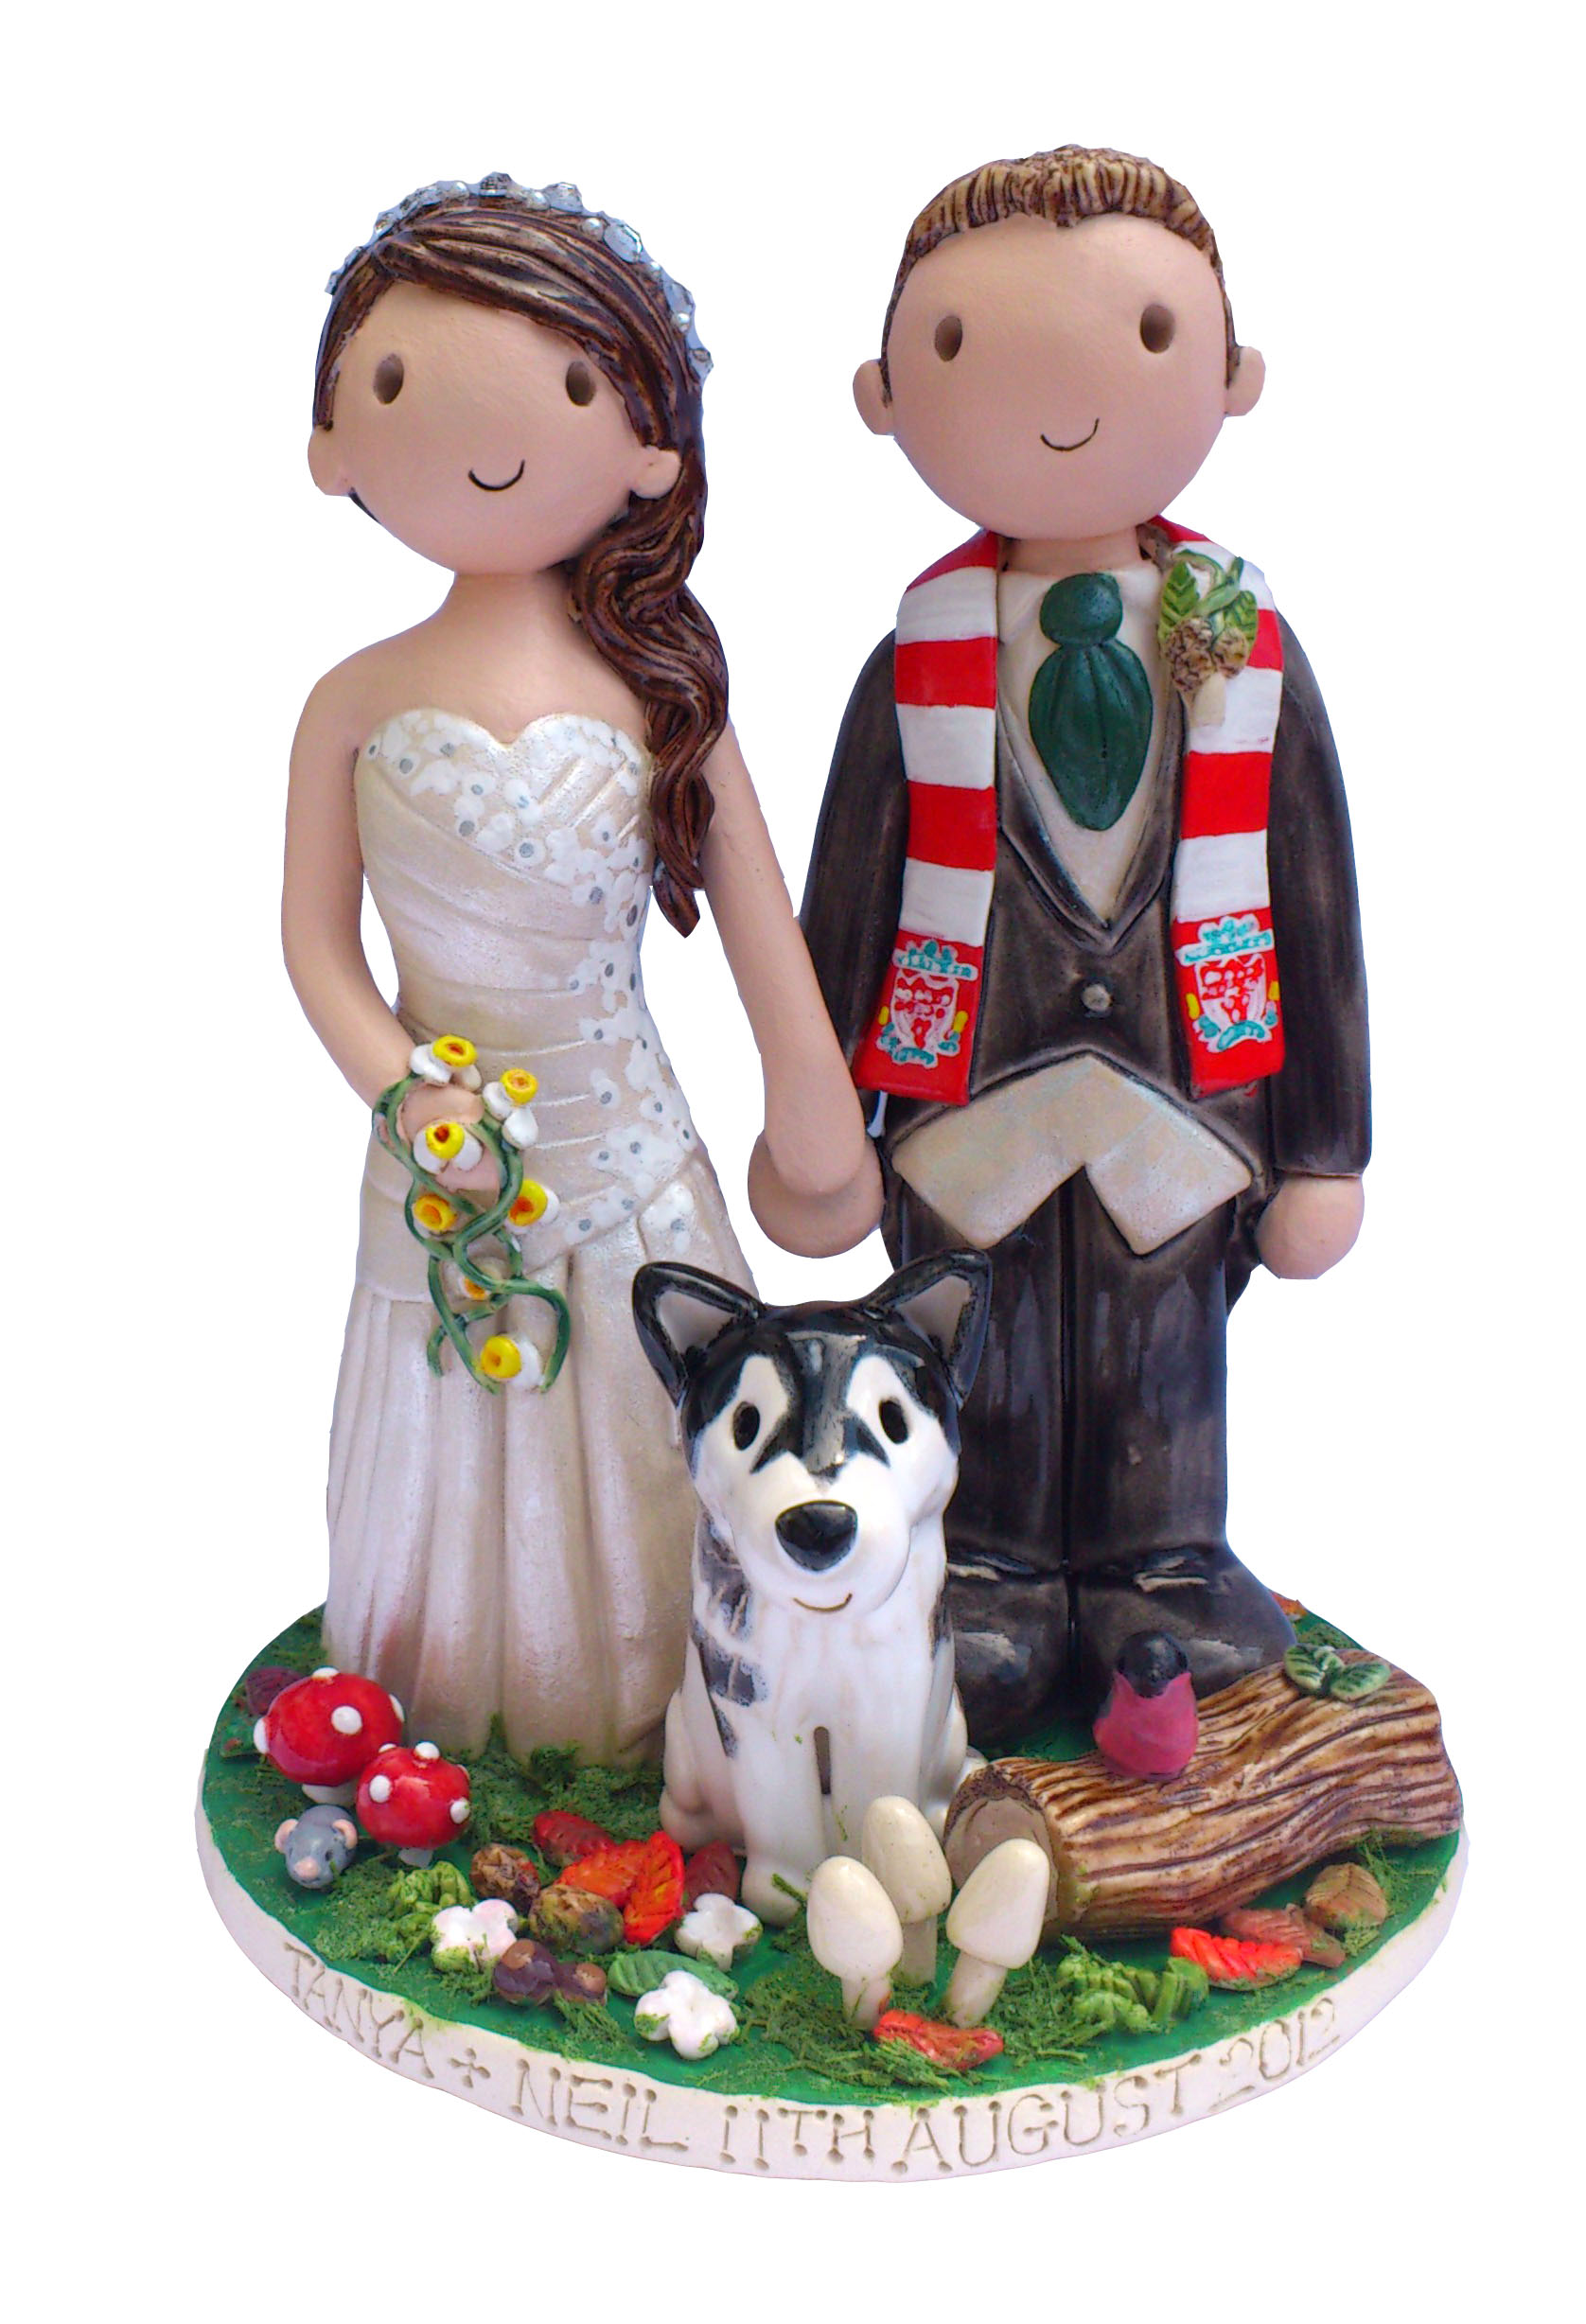 Cake Toppers Uk Personalised : Wedding Cake Toppers Gallery. Hand Made, Personalised Cake ...